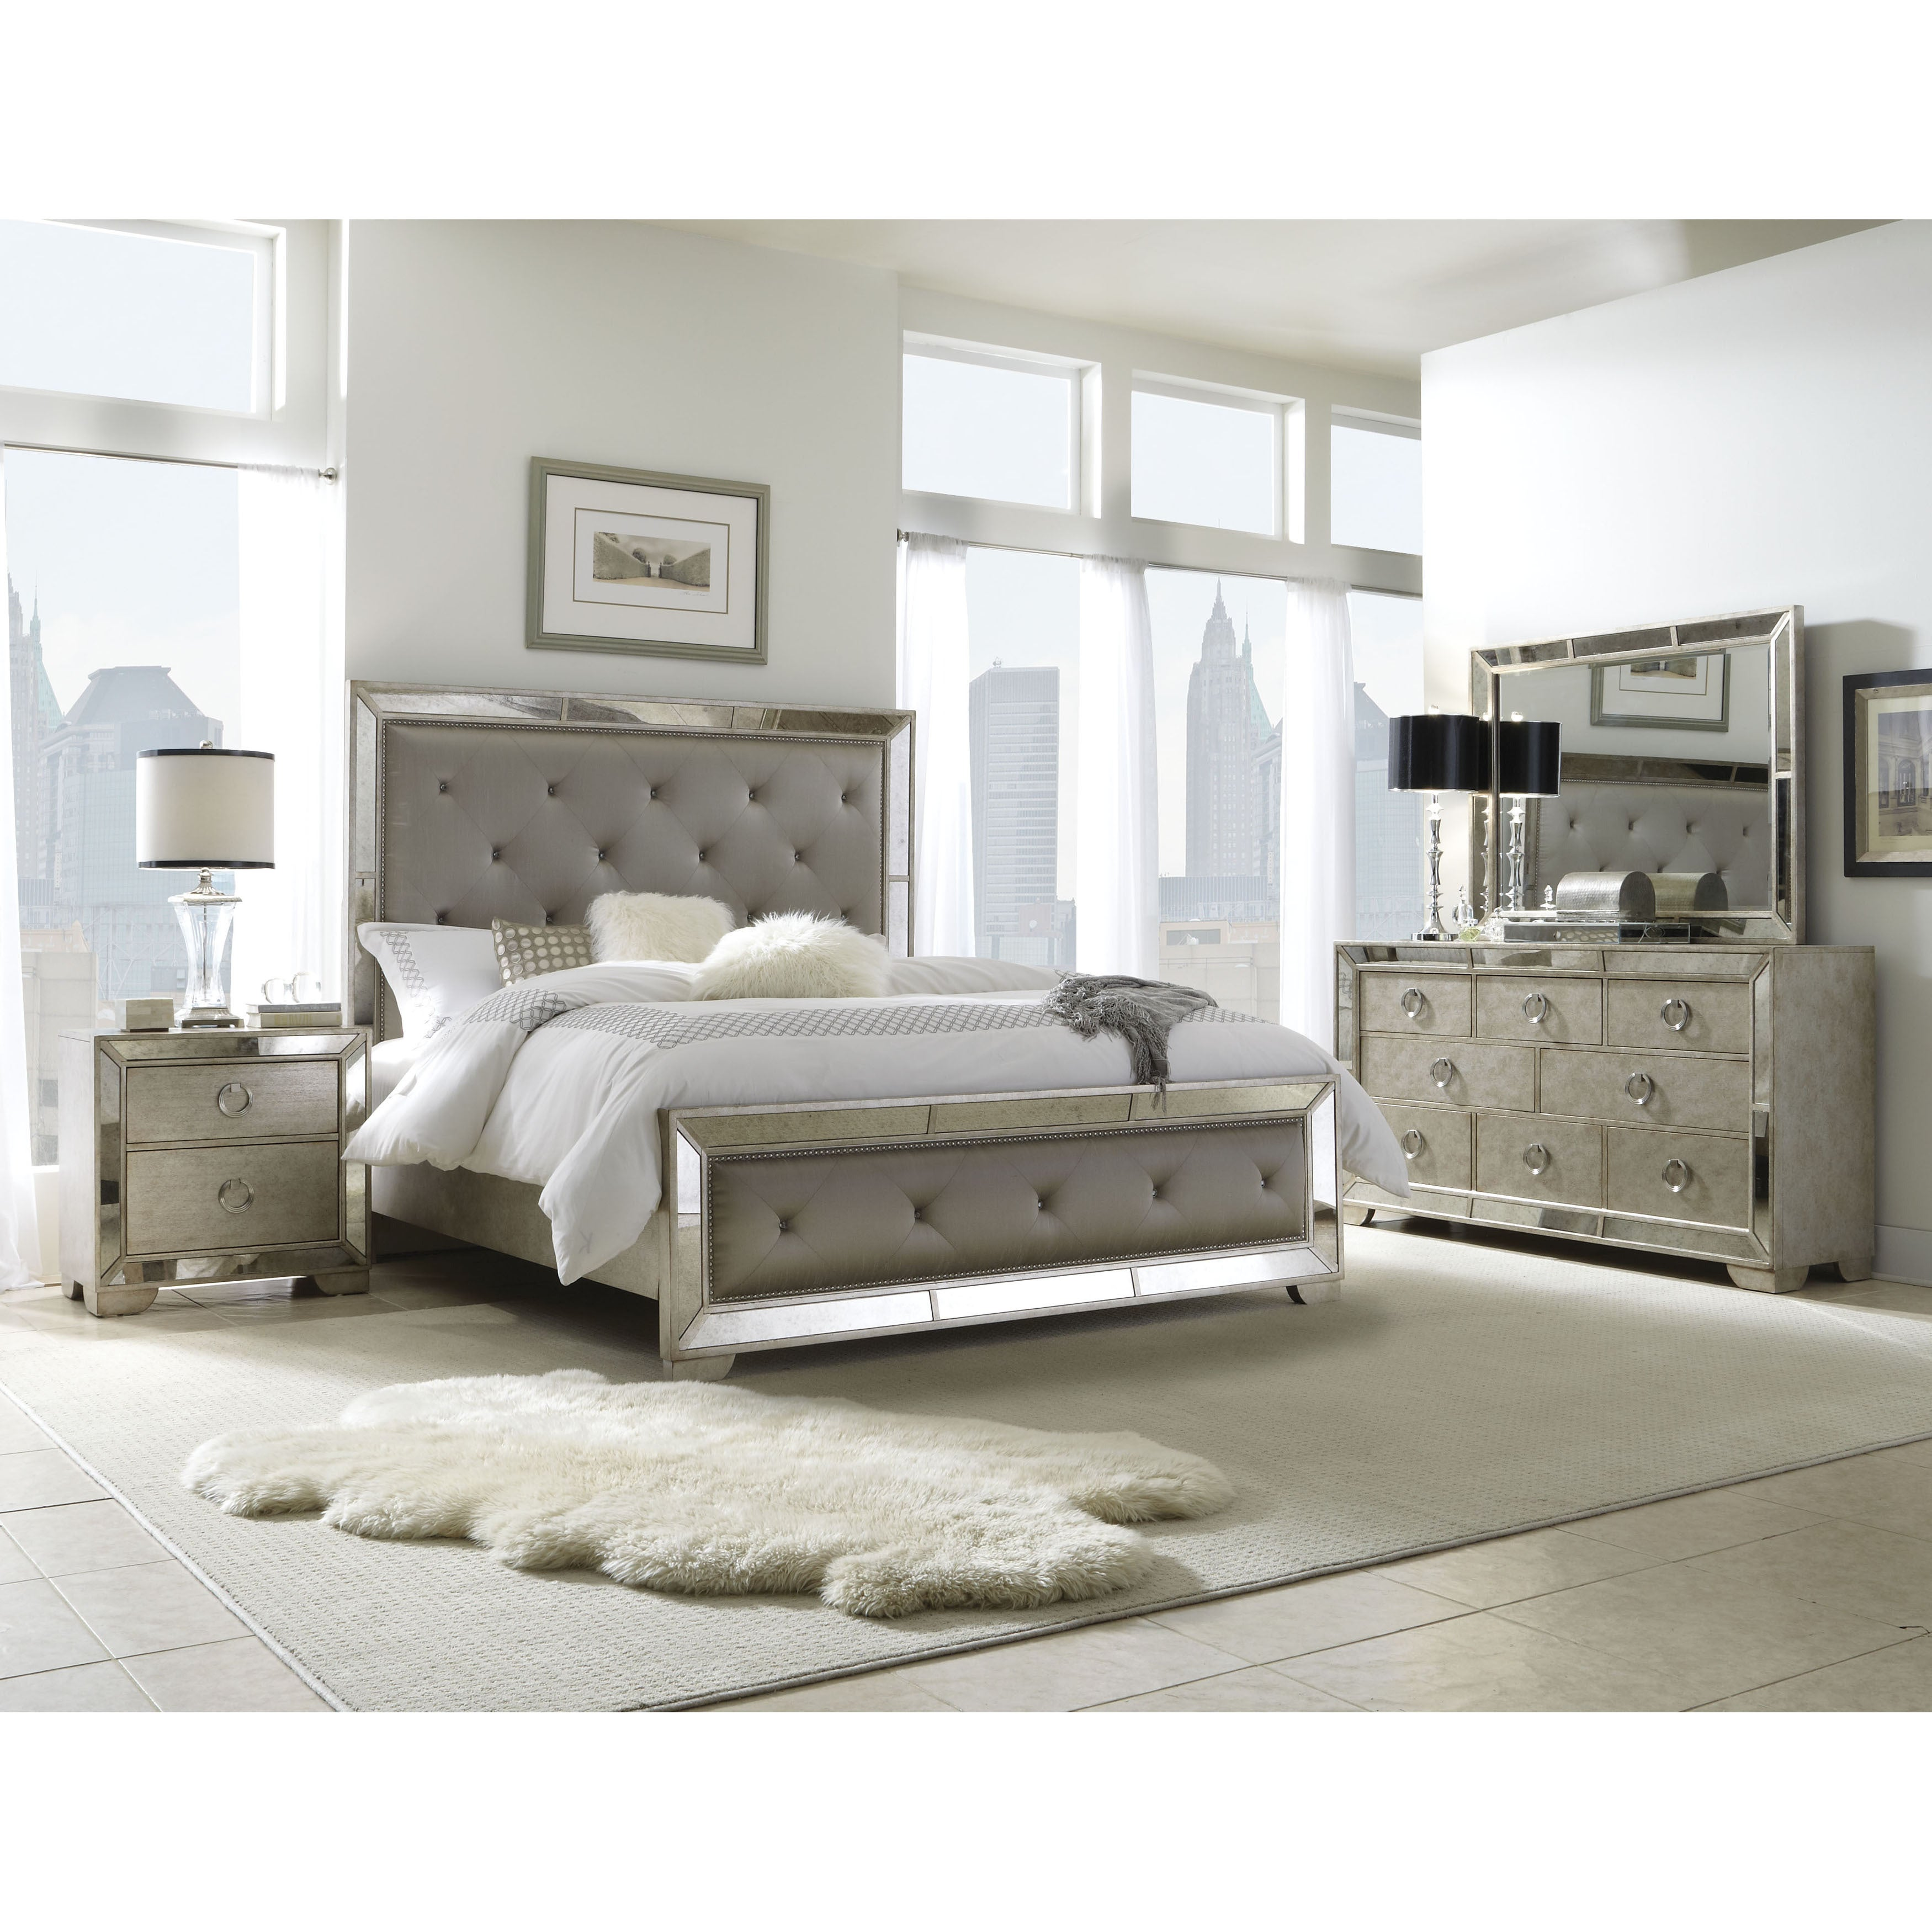 Celine 5 Piece Mirrored And Upholstered Tufted King Size Bedroom Set